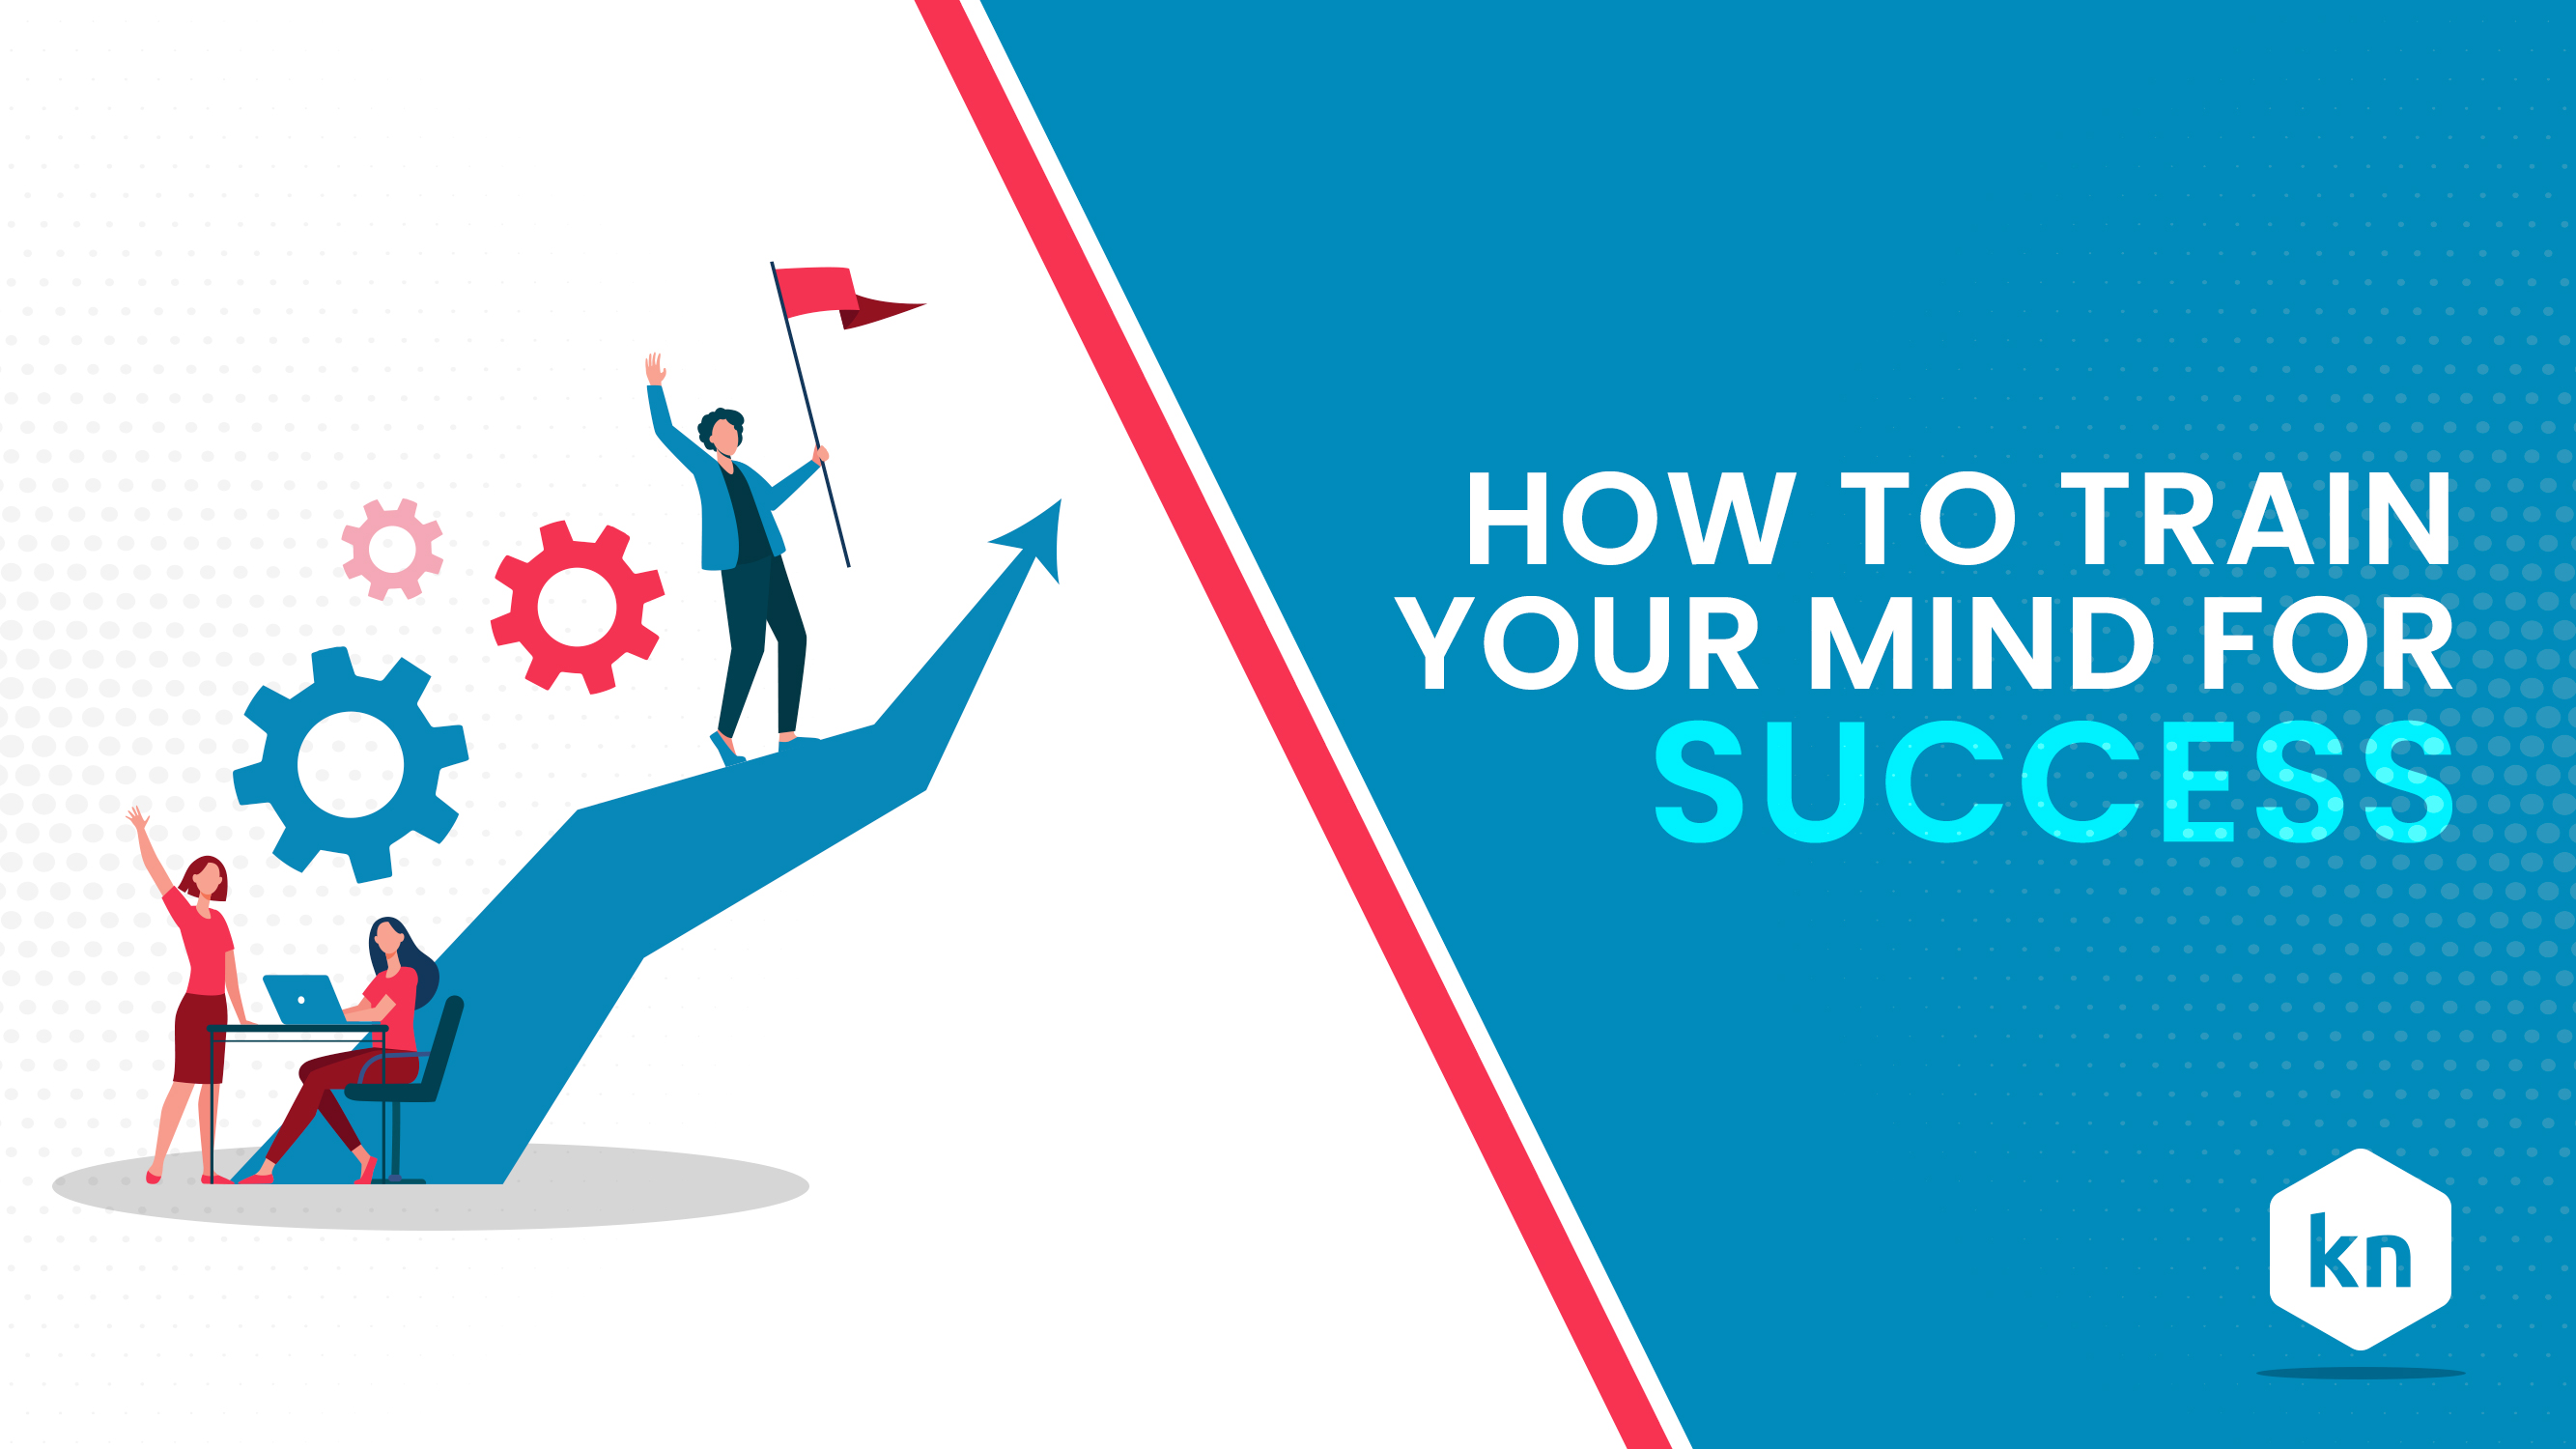 How To Train Your Mind For Success